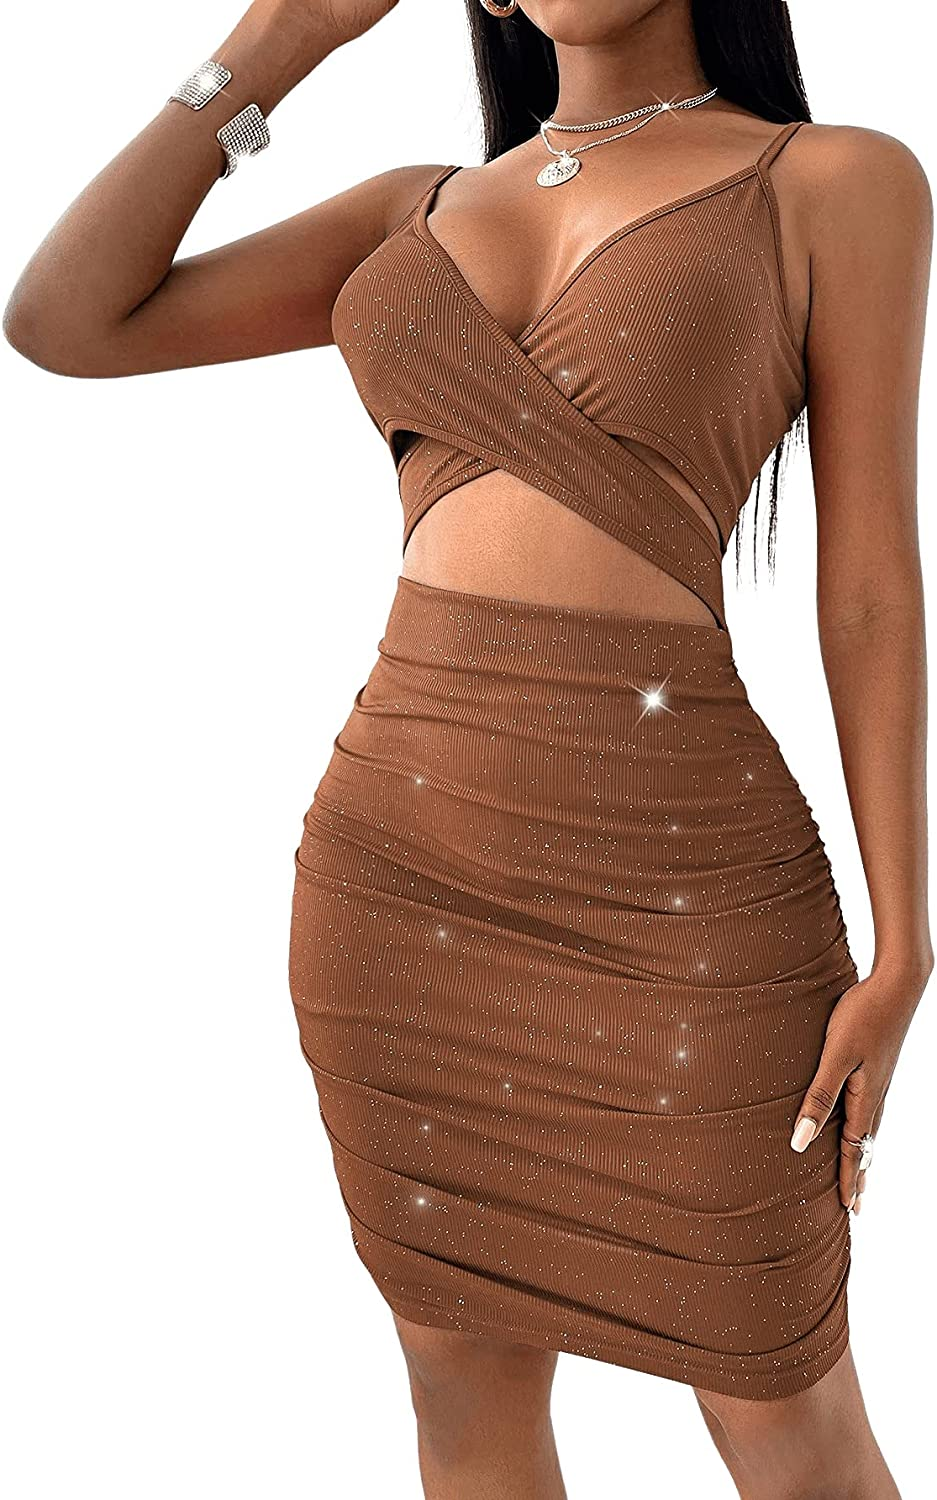 SOLY HUX Women's Criss Cross Cut Out V Neck Ruched Bodycon Mini Dress